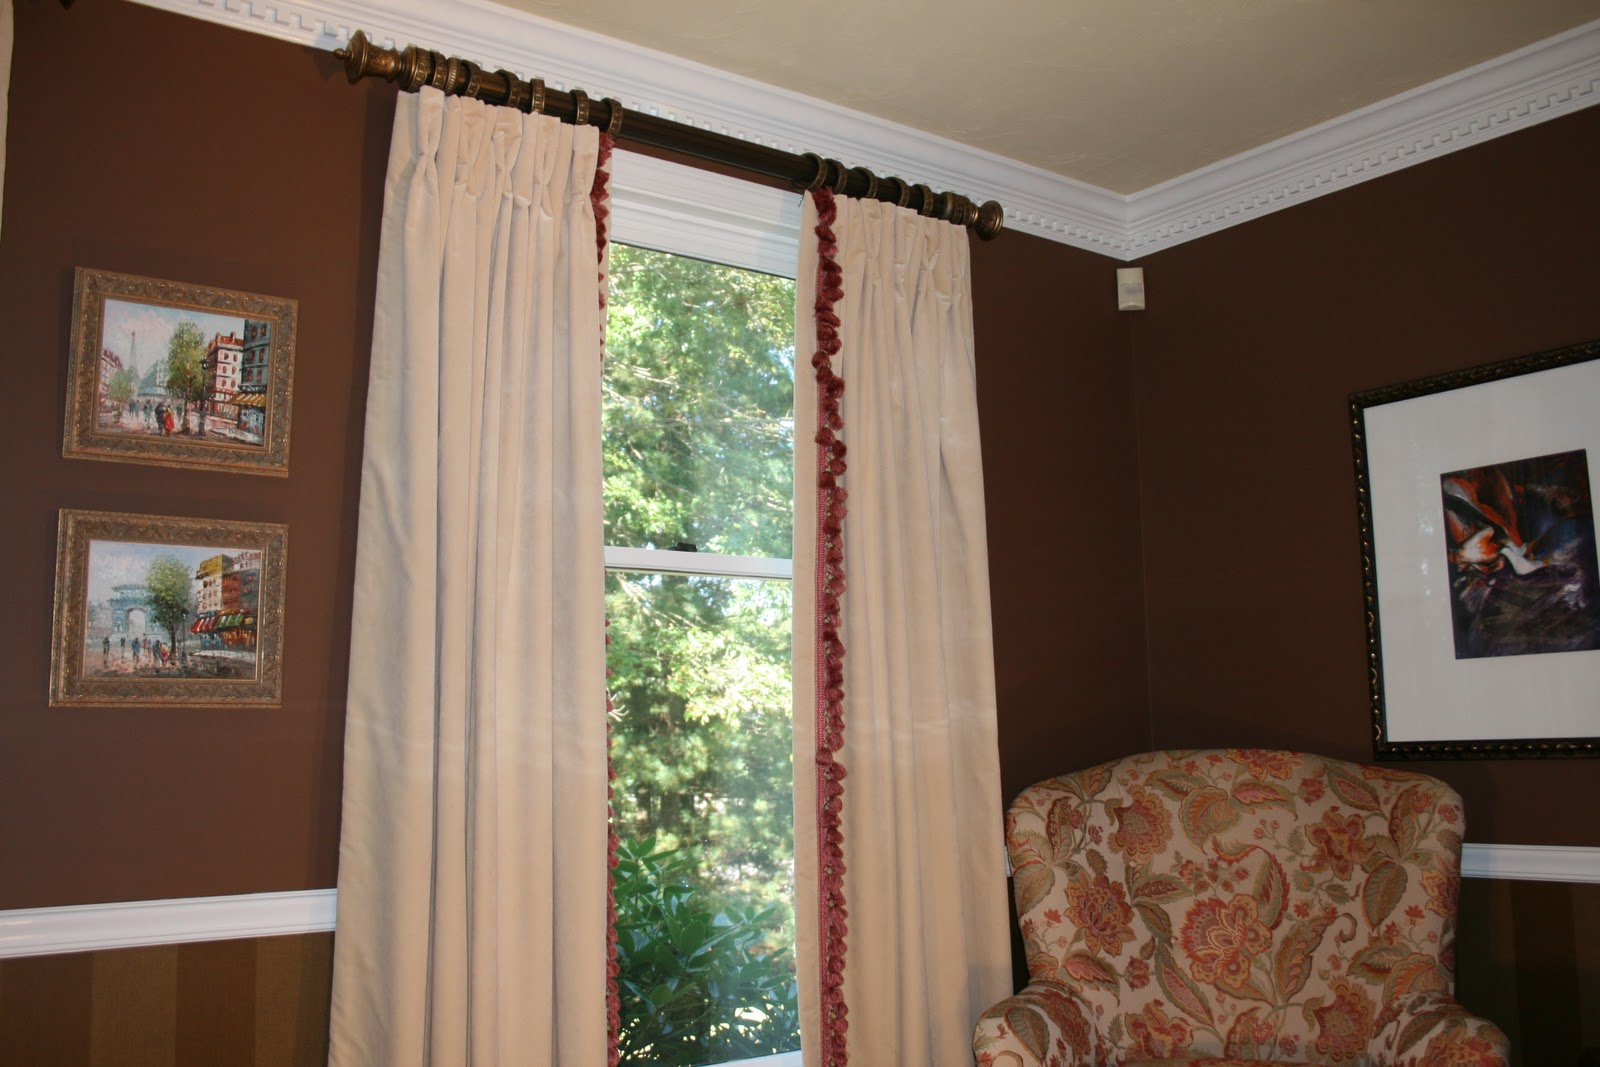 Redecorating dining room window treatments 7 dotty for Dining room window treatments